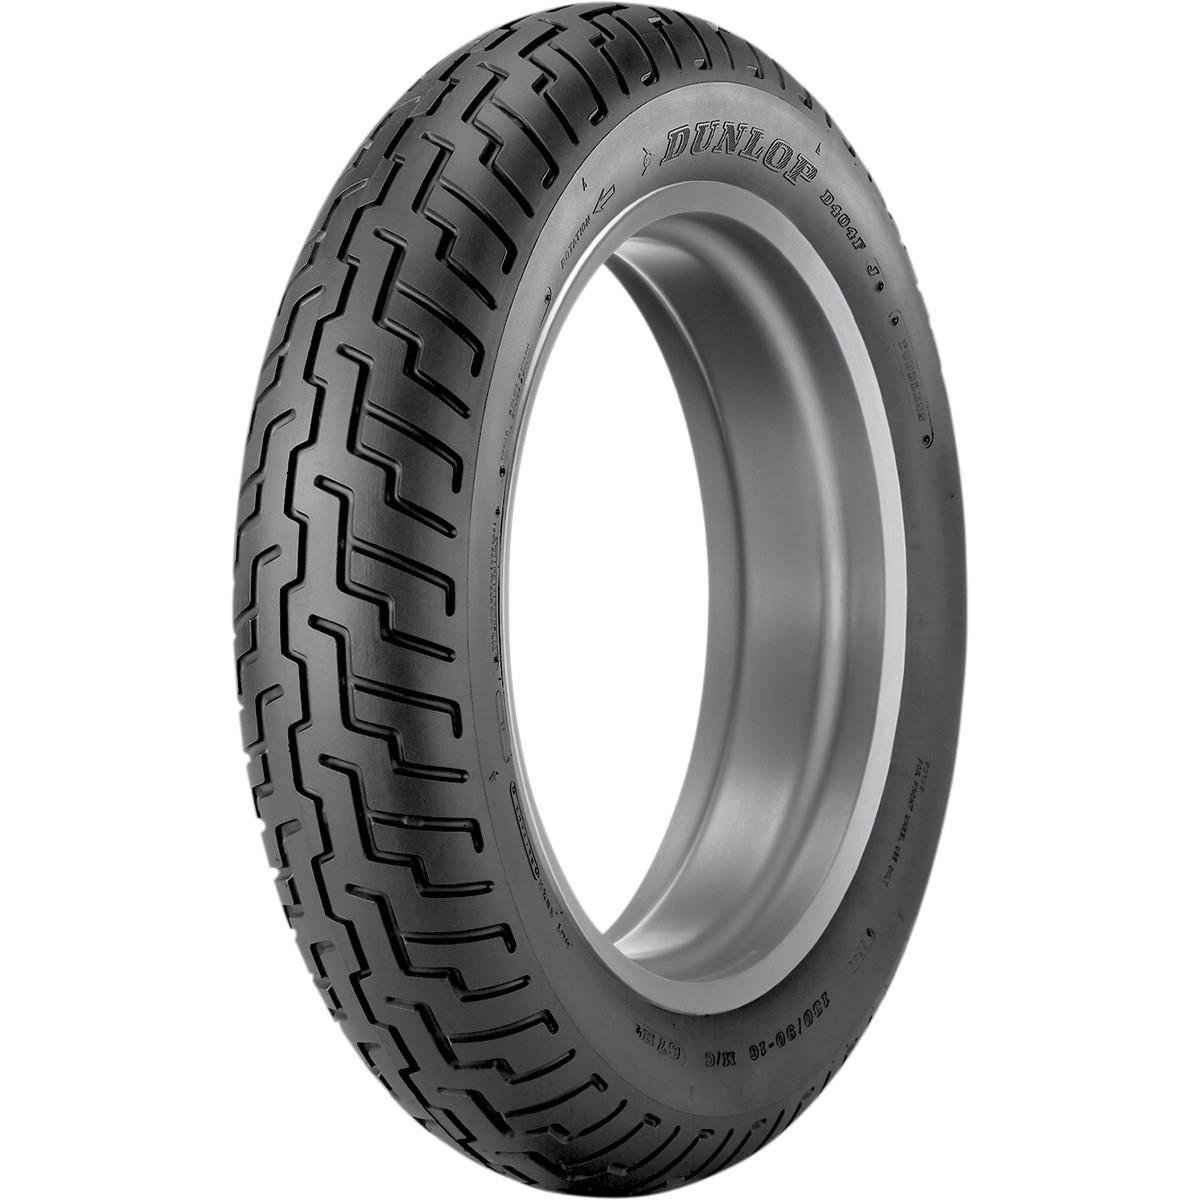 Dunlop D404 Tire - Front - 110/90-18 , Speed Rating: H, Tire Type: Street, Tire Construction: Bias, Position: Front, Rim Size: 18, Load Rating: 56, Tire Application: Cruiser, Tire Size: 110/90-18 32NK29